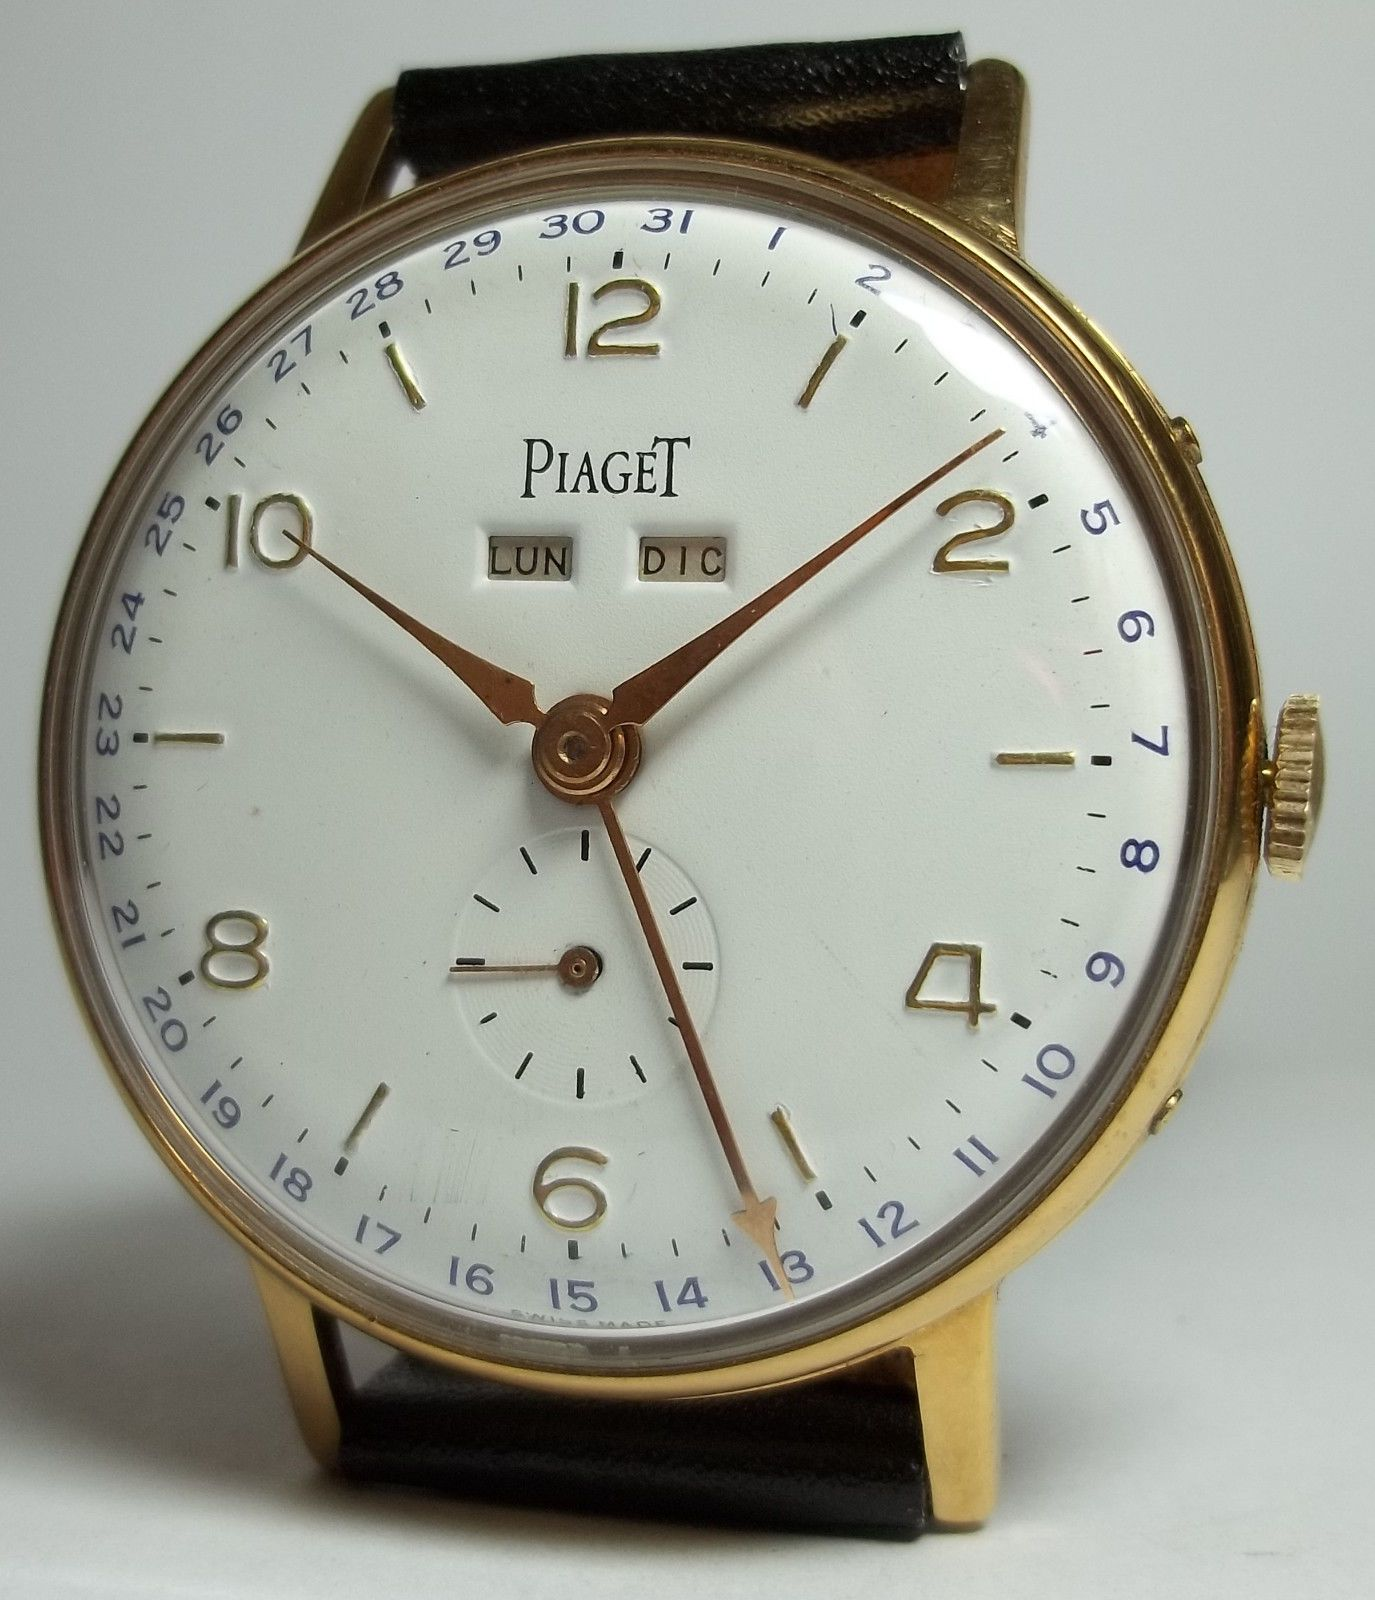 4d0cc92db46 Piaget triple date manual wind man s vintage watch oversized 37mm ...